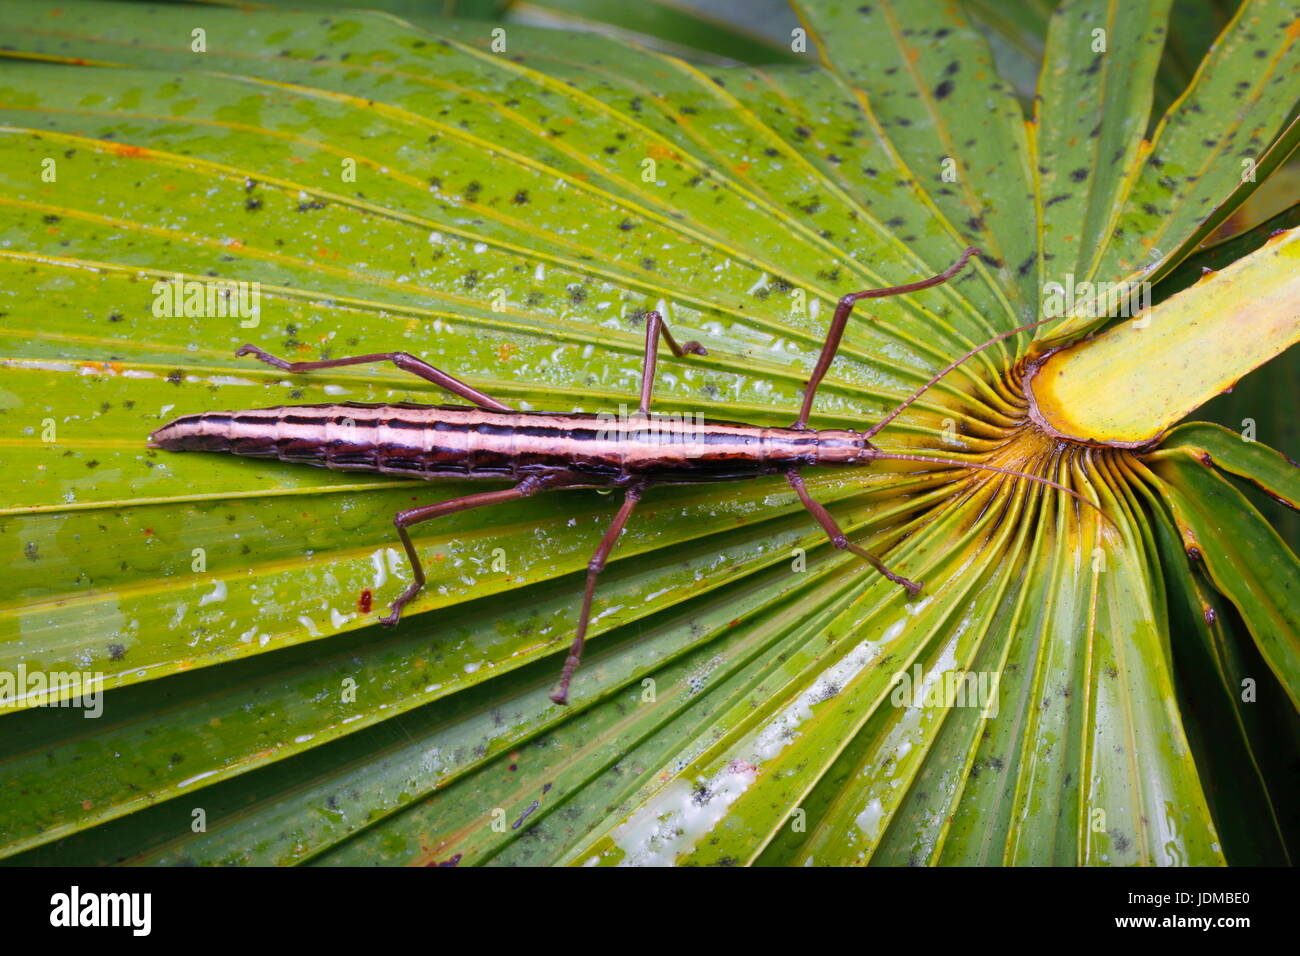 A two striped walking stick insect, Anisomorpha buprestoide. - Stock Image